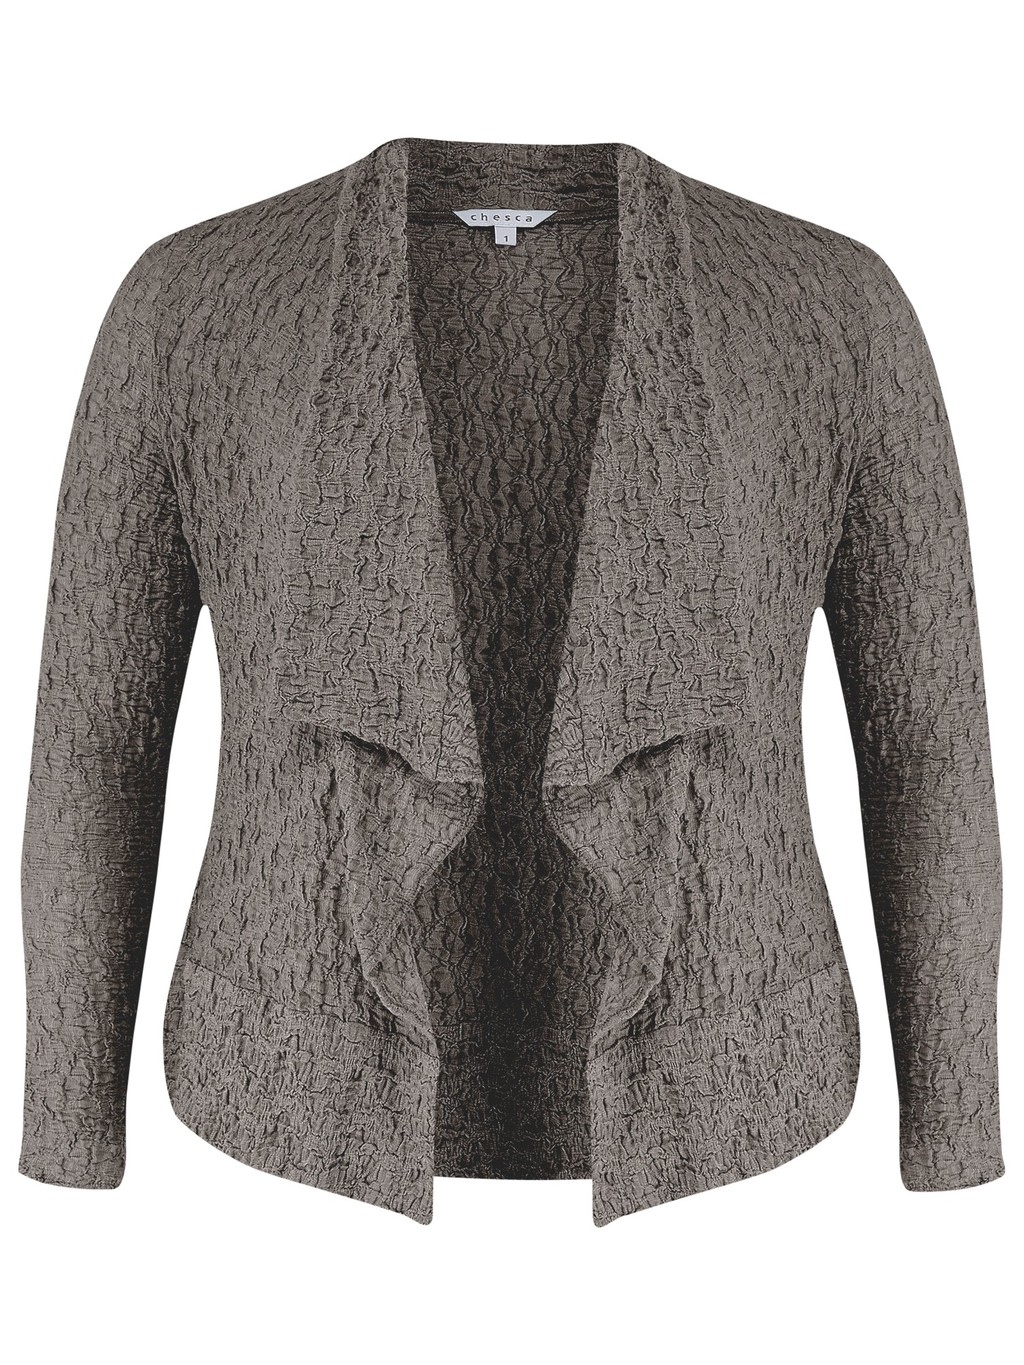 Bubble Jacket - pattern: plain; style: bolero/shrug; collar: shawl/waterfall; fit: slim fit; predominant colour: charcoal; occasions: casual, creative work; length: standard; fibres: cotton - stretch; sleeve length: 3/4 length; sleeve style: standard; collar break: low/open; pattern type: fabric; texture group: other - light to midweight; season: s/s 2014